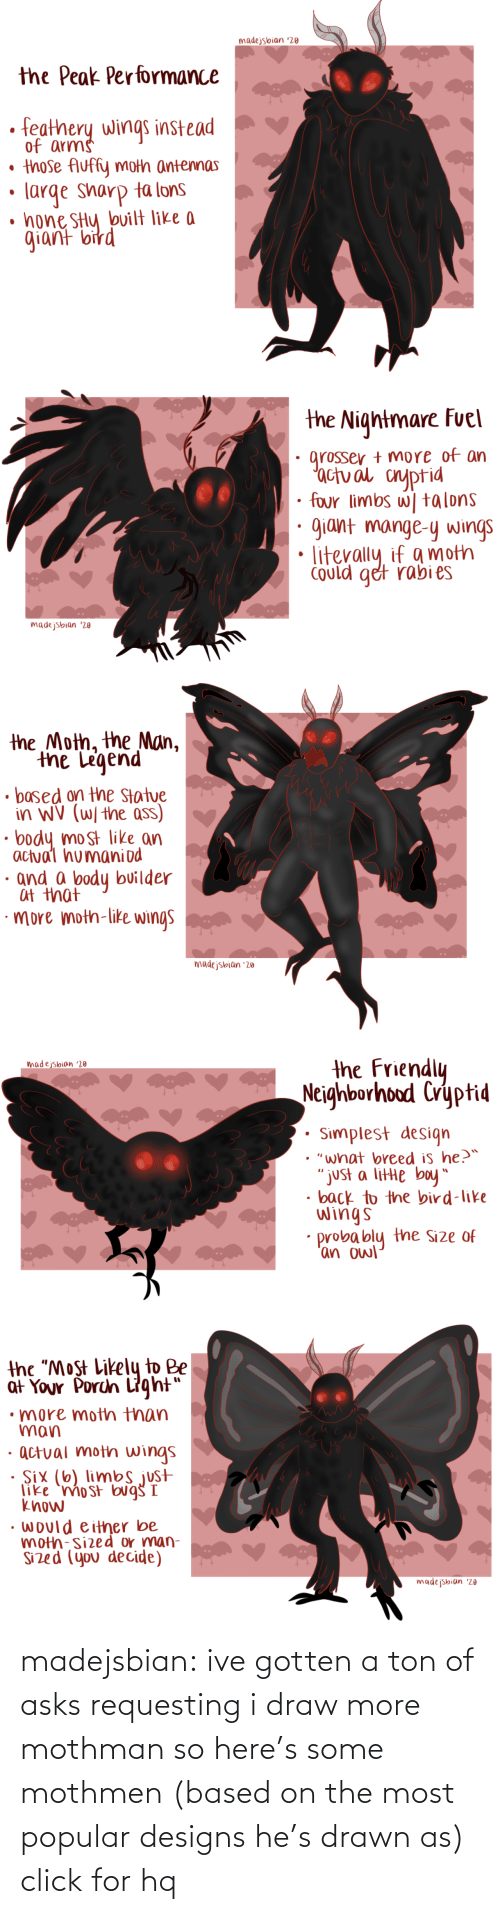 "the bird: madejsbian '20  the Peak Performance  feathery wings instead  of arms  • those Auffy moth antennas  large sharp ta lons  • hone SHy bvilt like a  giant bird   the Nightmare Fuel  grosser + more of an  'actual cnyptid  four limbs w| talons  giant mange-y wings  Could get rabi es  madejsbian '20   the Moth, the Man,  the Legend  • based on the Statue  in WV (W/ the ass)  body most like an  actual humaniod  · and a body builder  at that  ·more moth-like wings  madejsbian '20   the Friendly  Neighborhood Cryptid  madejsbian '20  Simplest design  • ""what breed is he?™  ""just a litte boy""  • back to the bird-like  wings  probably the Size of  'an owl   the ""Most Likely to Be  at Your Porch Light""  •more moth than  man  · actual moth wings  · Six (6) limbs just  like 'mo st bug I  know  • would either be  moth-sized or man-  Sized (you decide)  madejsbian '20 madejsbian: ive gotten a ton of asks requesting i draw more mothman so here's some mothmen (based on the most popular designs he's drawn as)